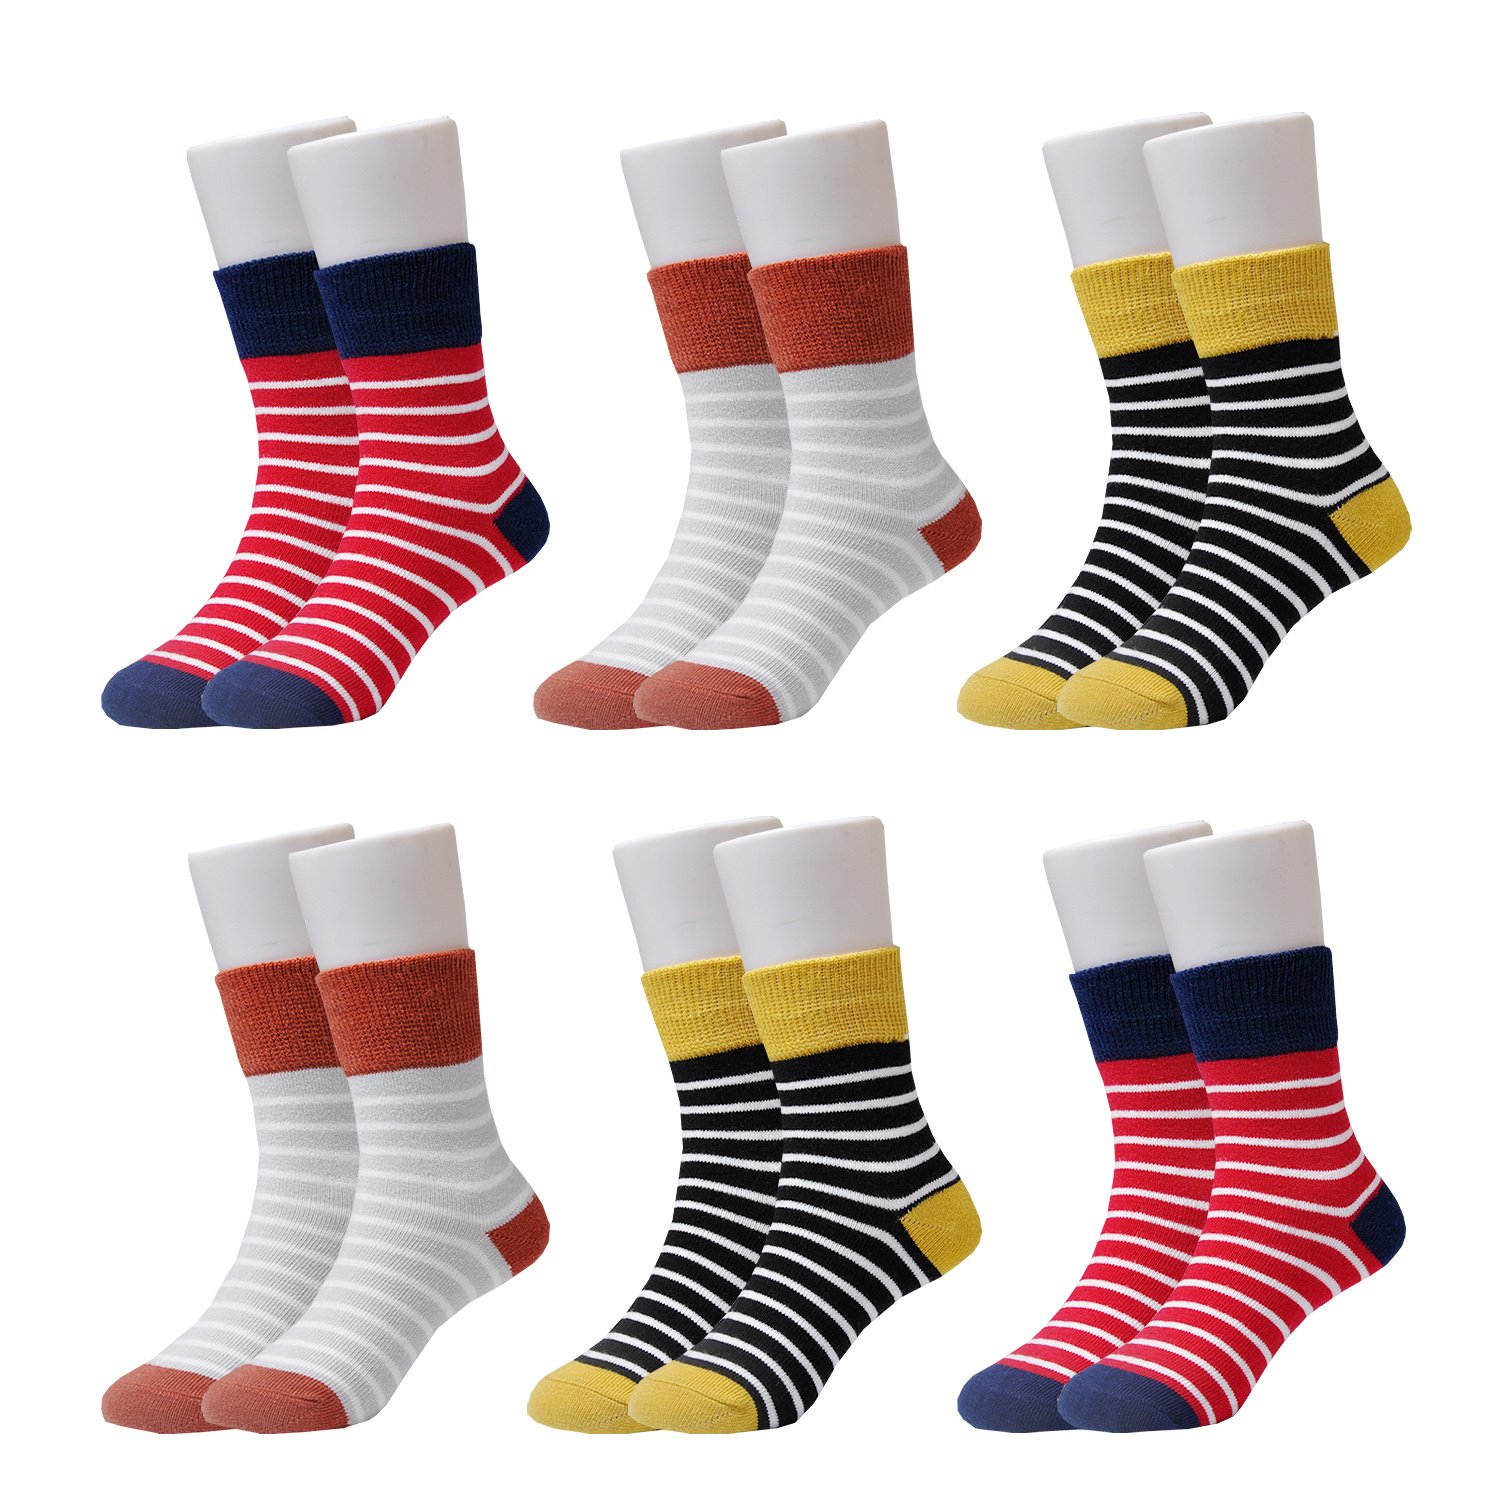 Epeius Kids Little Boys' Stripes Pattern Cotton Short Crew Socks for 8-11 Years 6 Pair Pack,Shoe Size 12.5-2